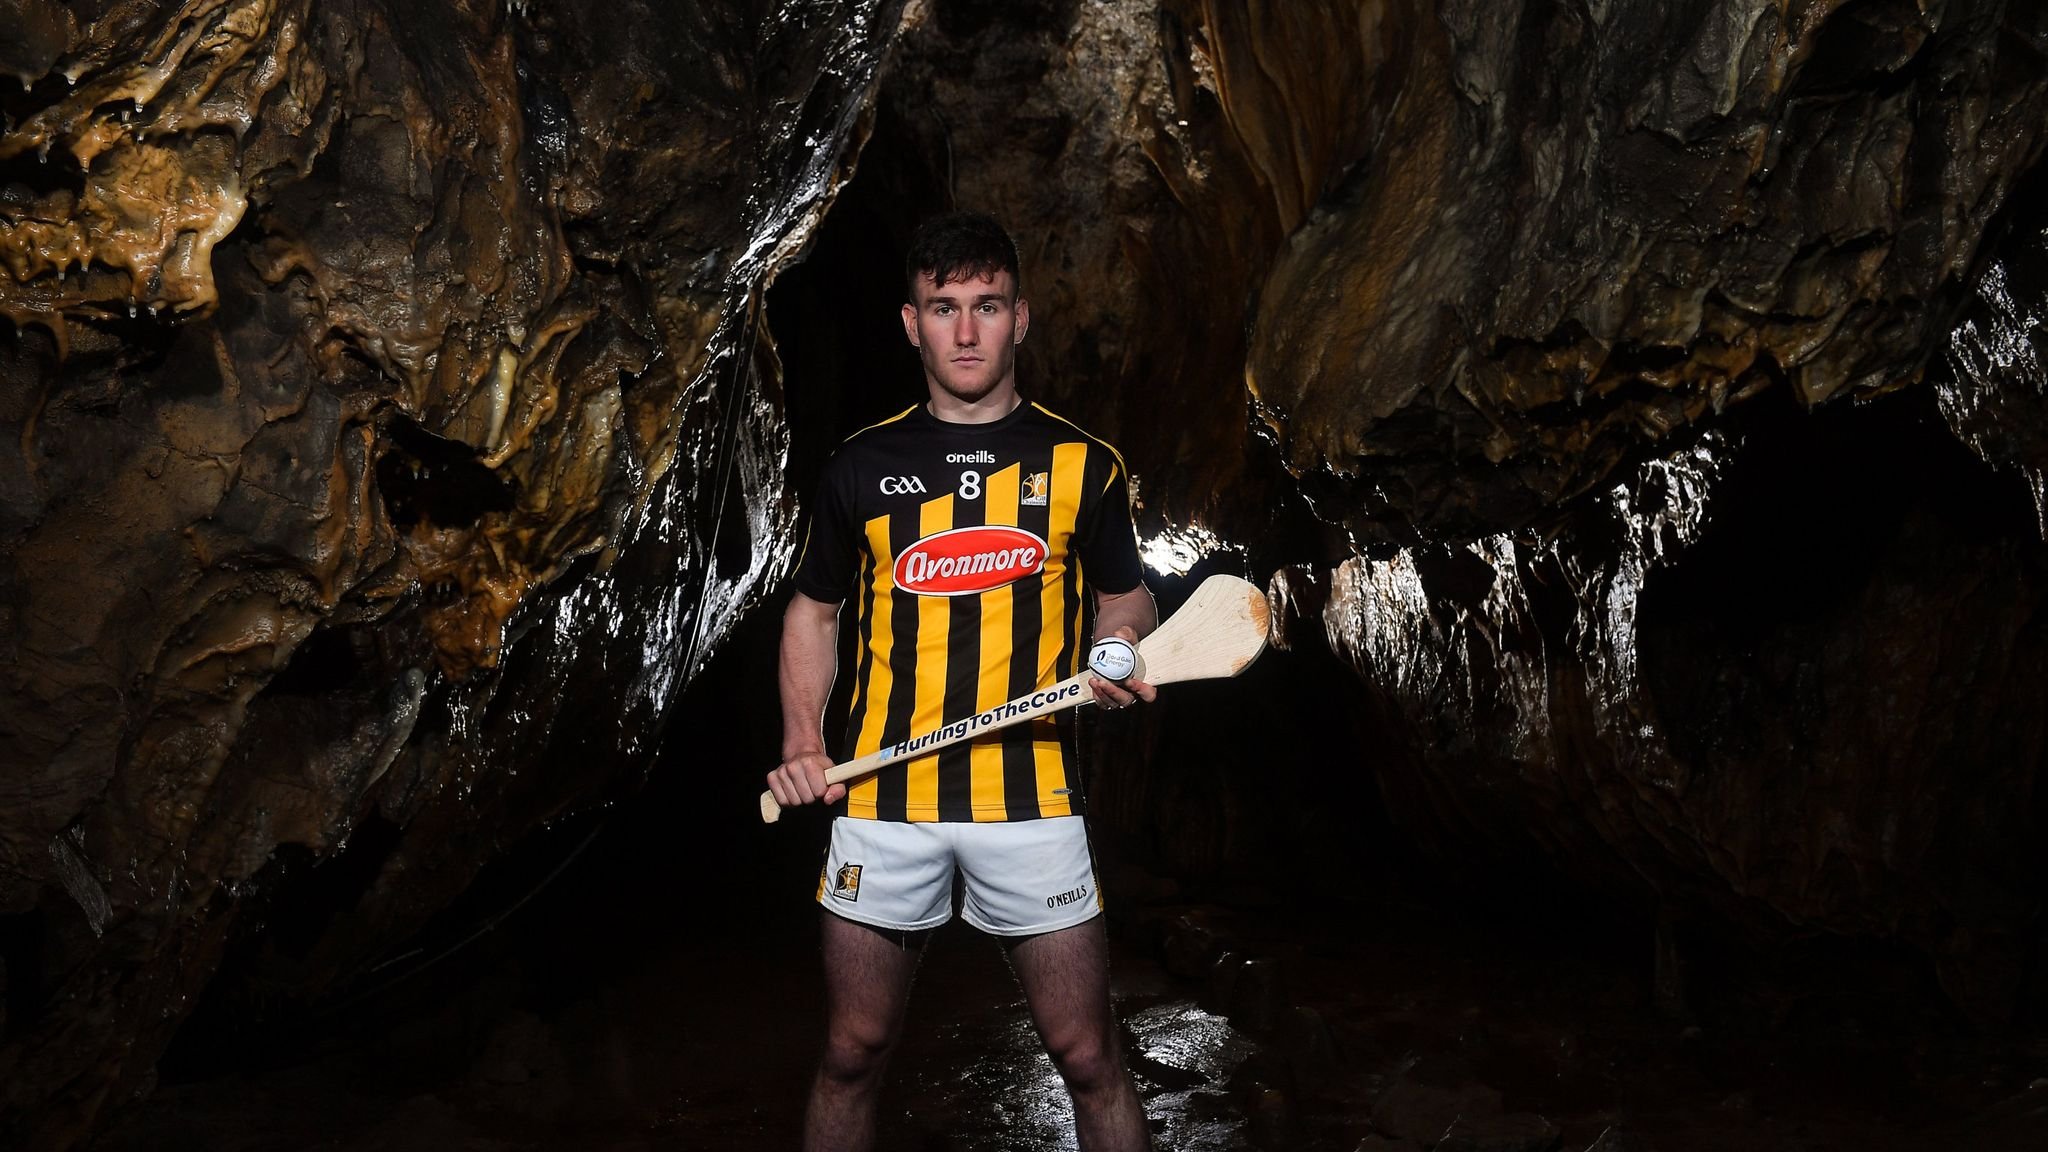 Richie Leahy says it was unreal to get Kilkenny call | GAA News